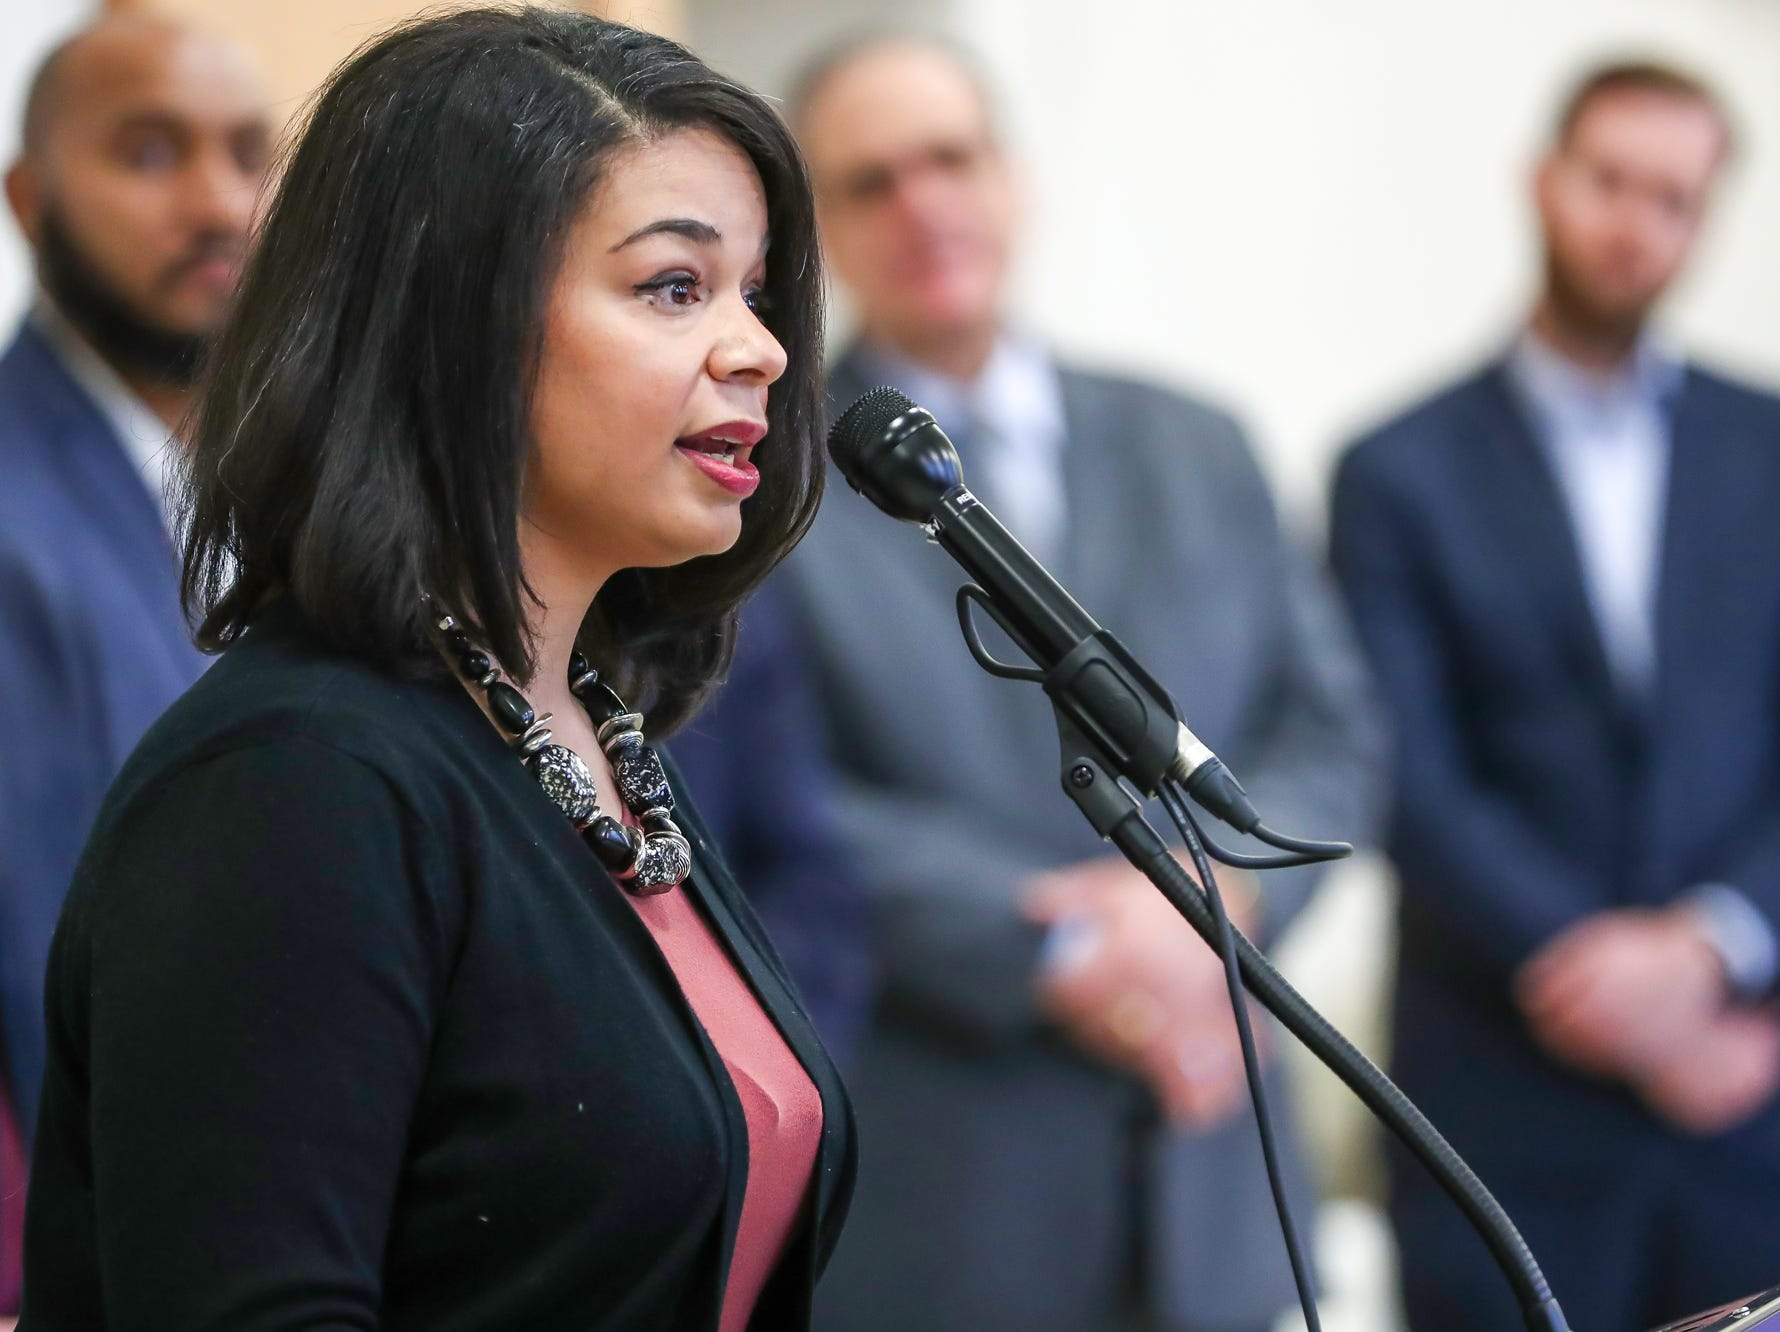 """Ashley Gurvitz, community development manager at Eastern Star Church, address the crowd gathered after the announcement on the start of a process to study body worn cameras on IMPD officers during a press conference at the Edna Martin Christian Center in Indianapolis on Monday, Feb. 4, 2019. We know our community can be better,"""" Gurvitz said. """"Although certain efforts have been made we have to continue to provide additional progress. Many are losing their lives because court is been held in the streets."""""""